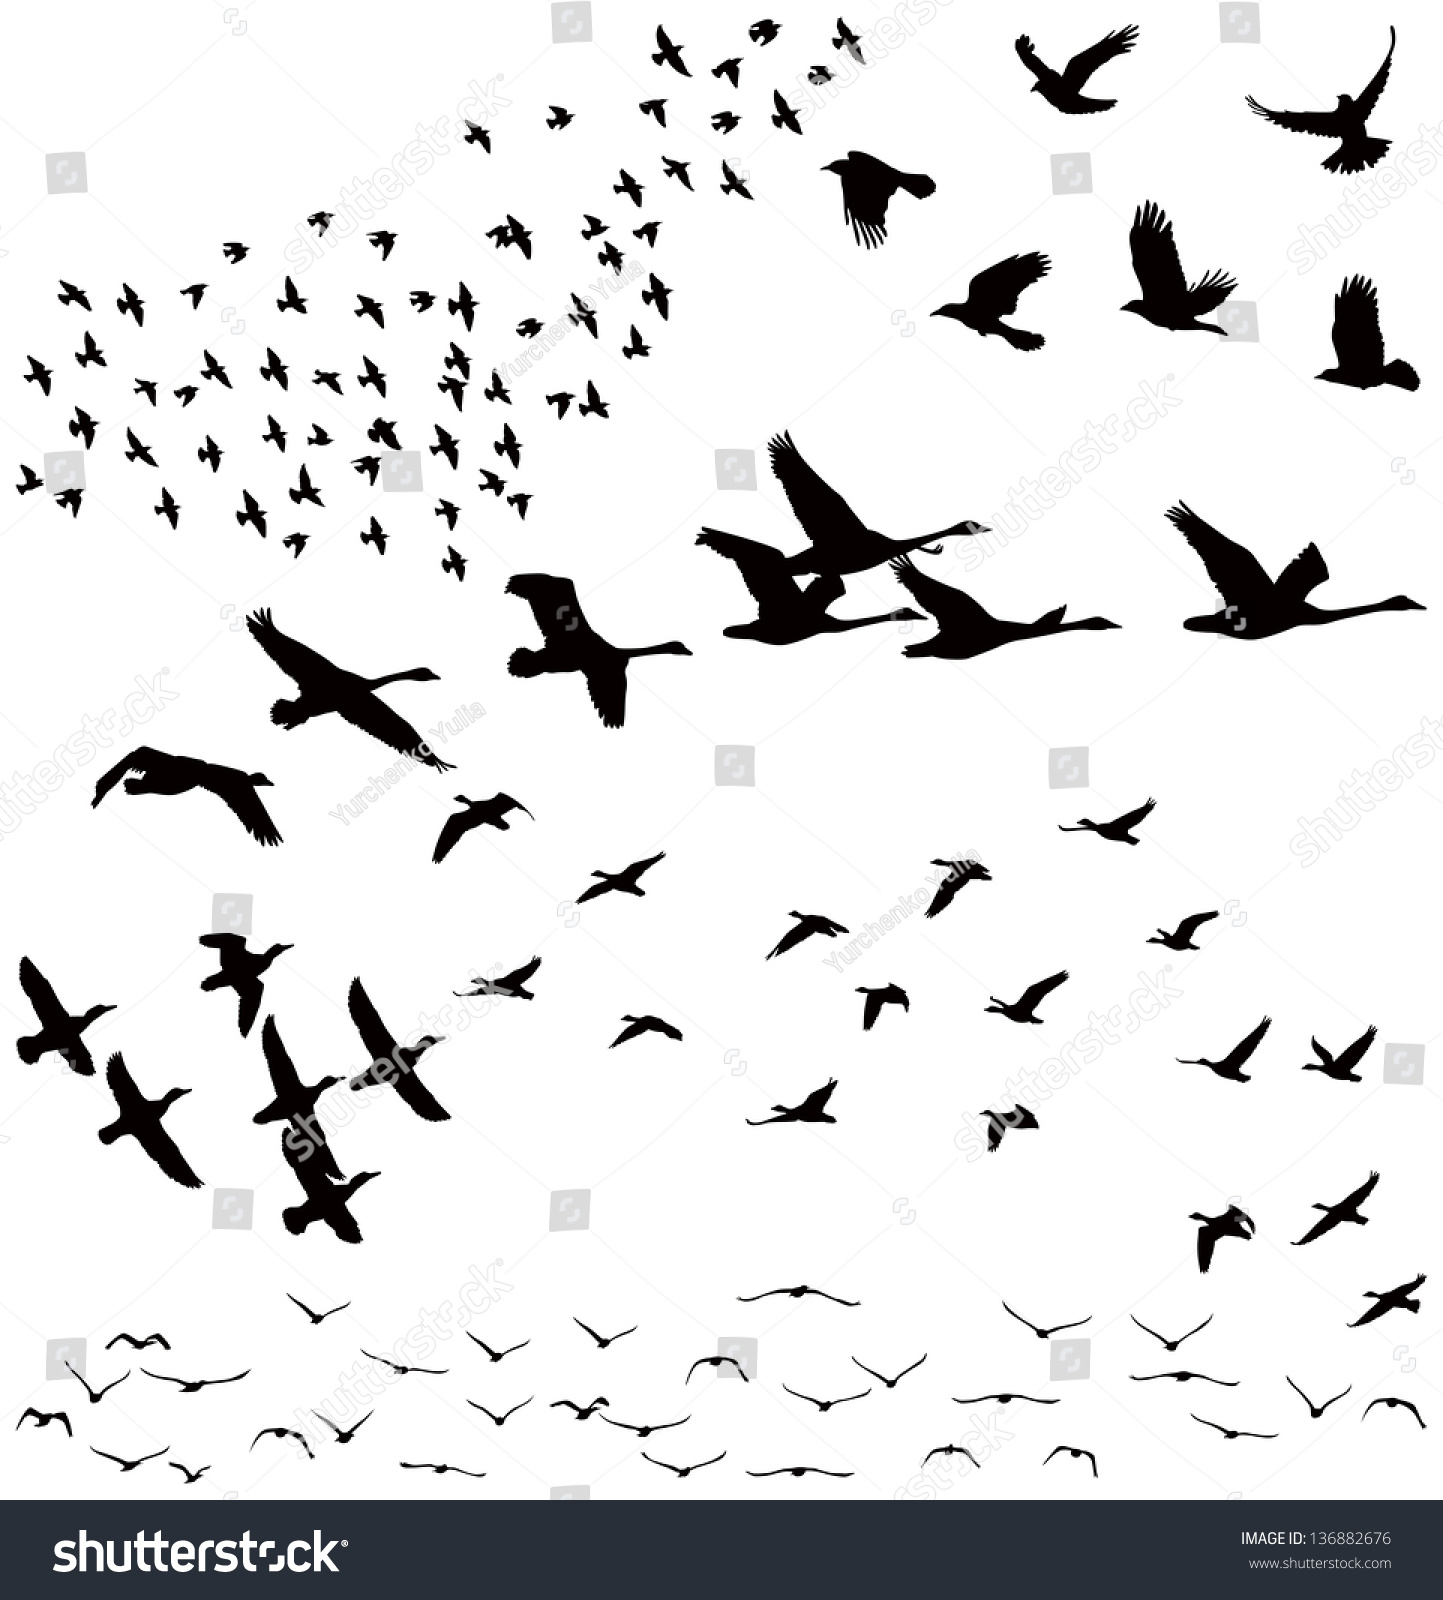 Vector Silhouettes Flock Birds Crows Swans 136882676